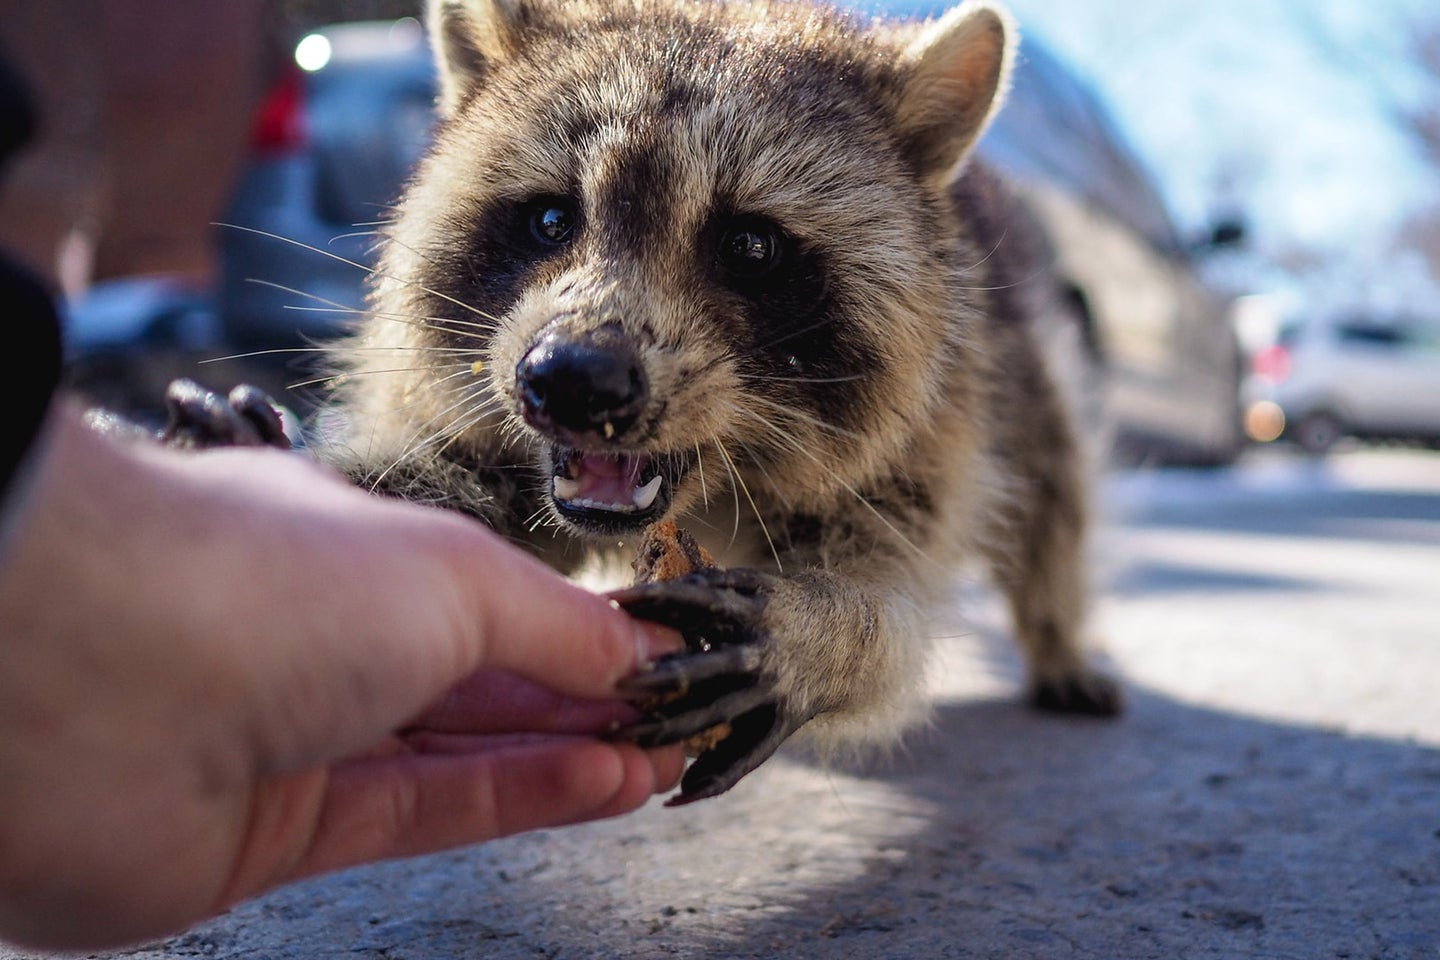 person giving food to a racoon